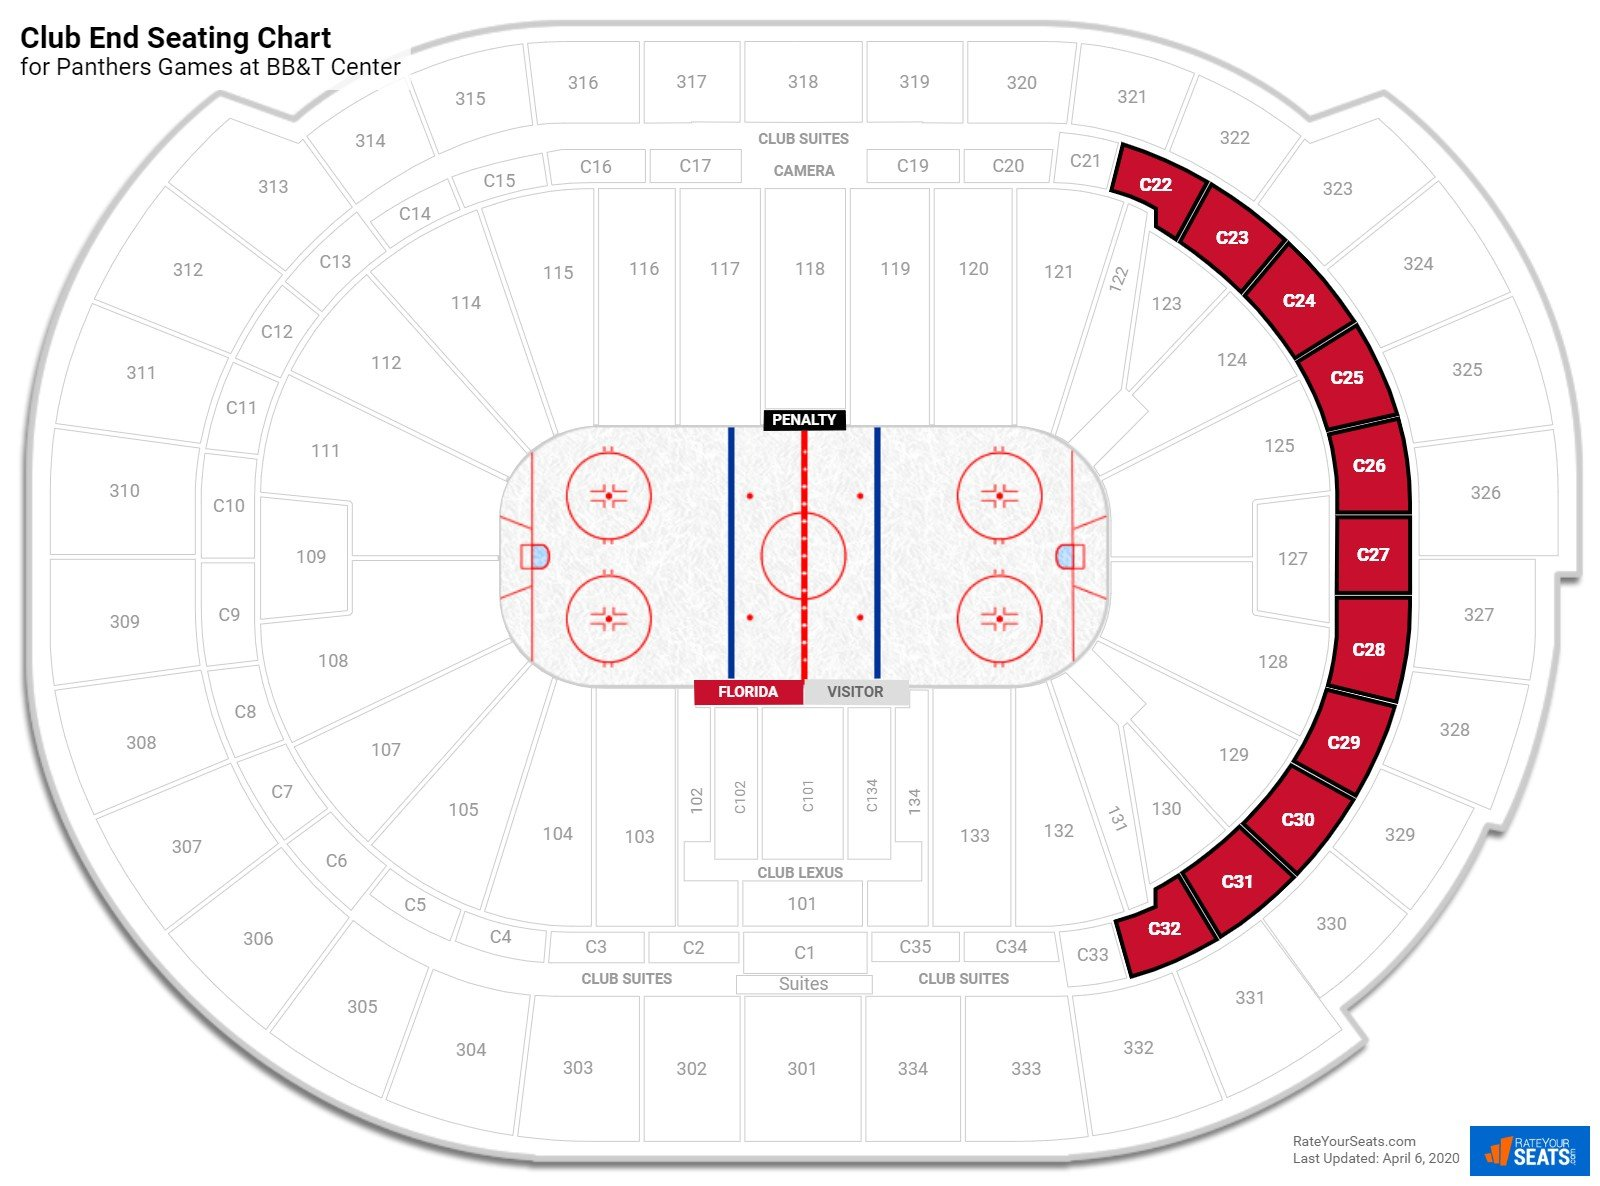 BB&T Center Club Endzone seating chart